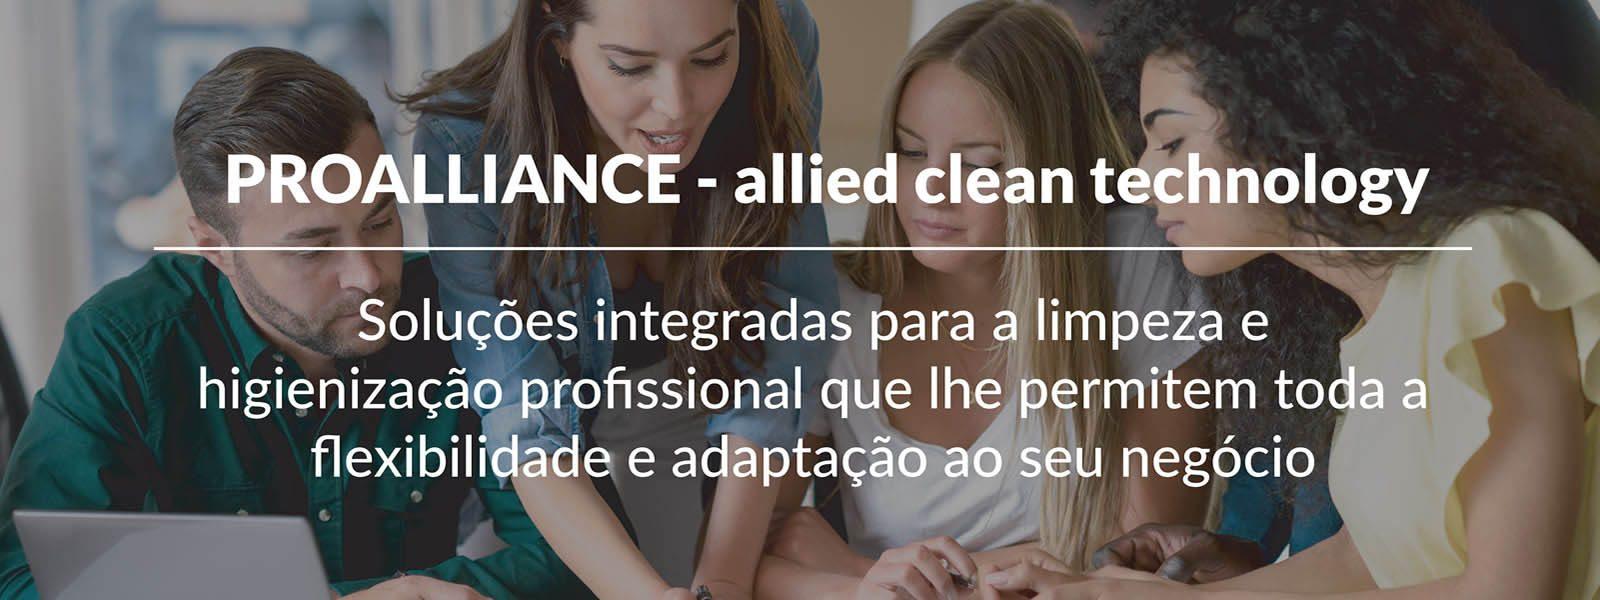 Proalliance - allied clean technology